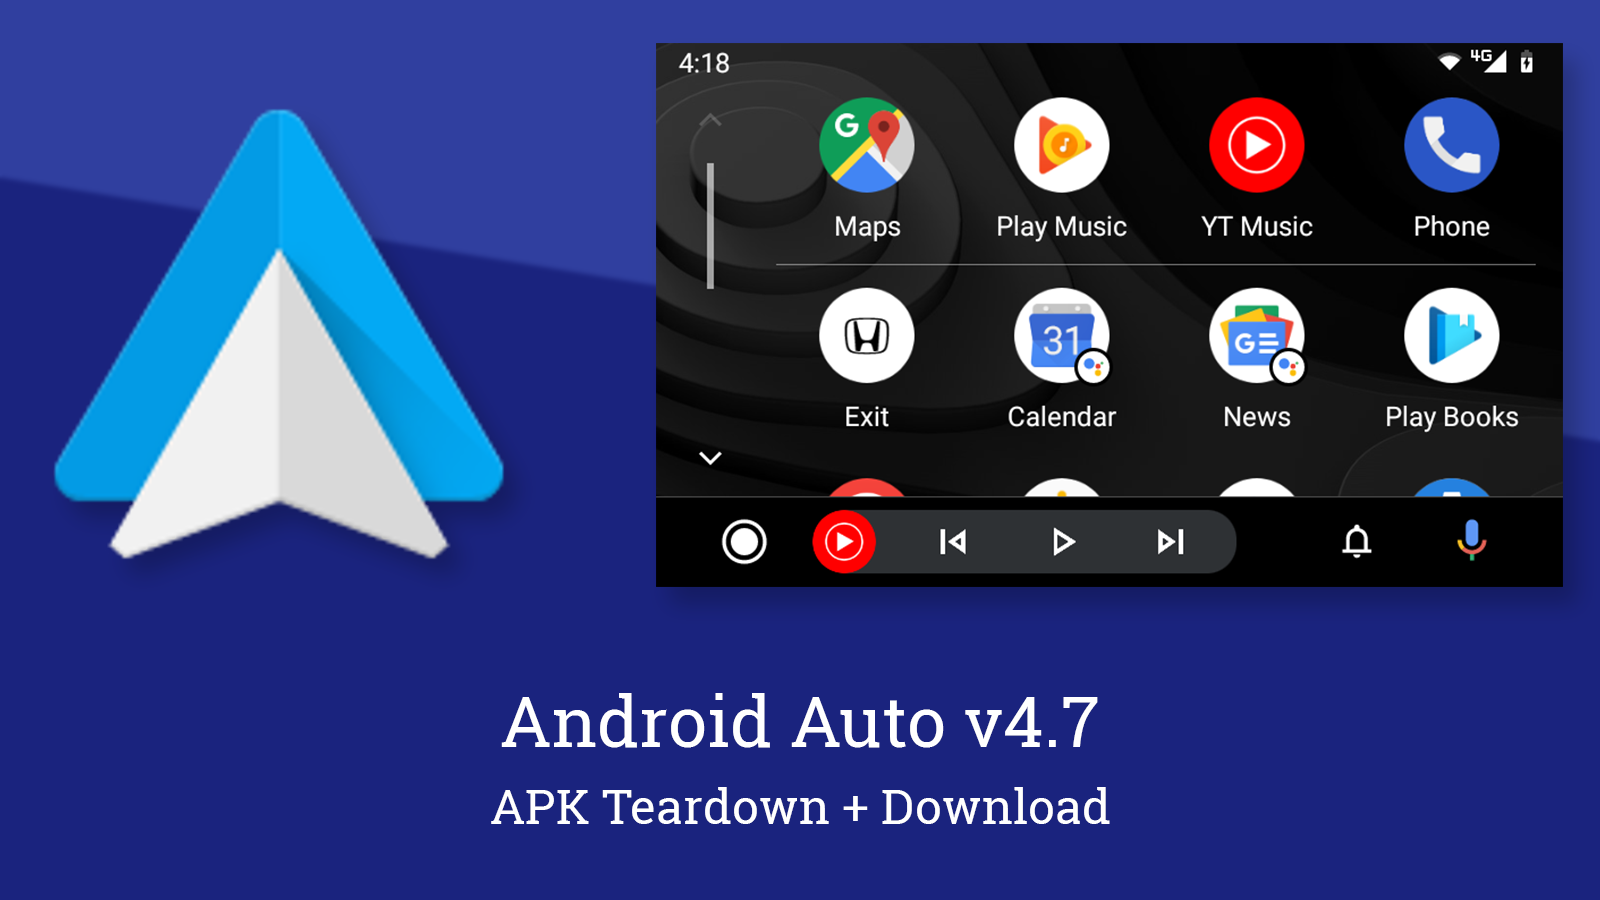 Android Auto v4.7 prepares to hide unwanted apps and adds new media notification setting [APK Teardown]